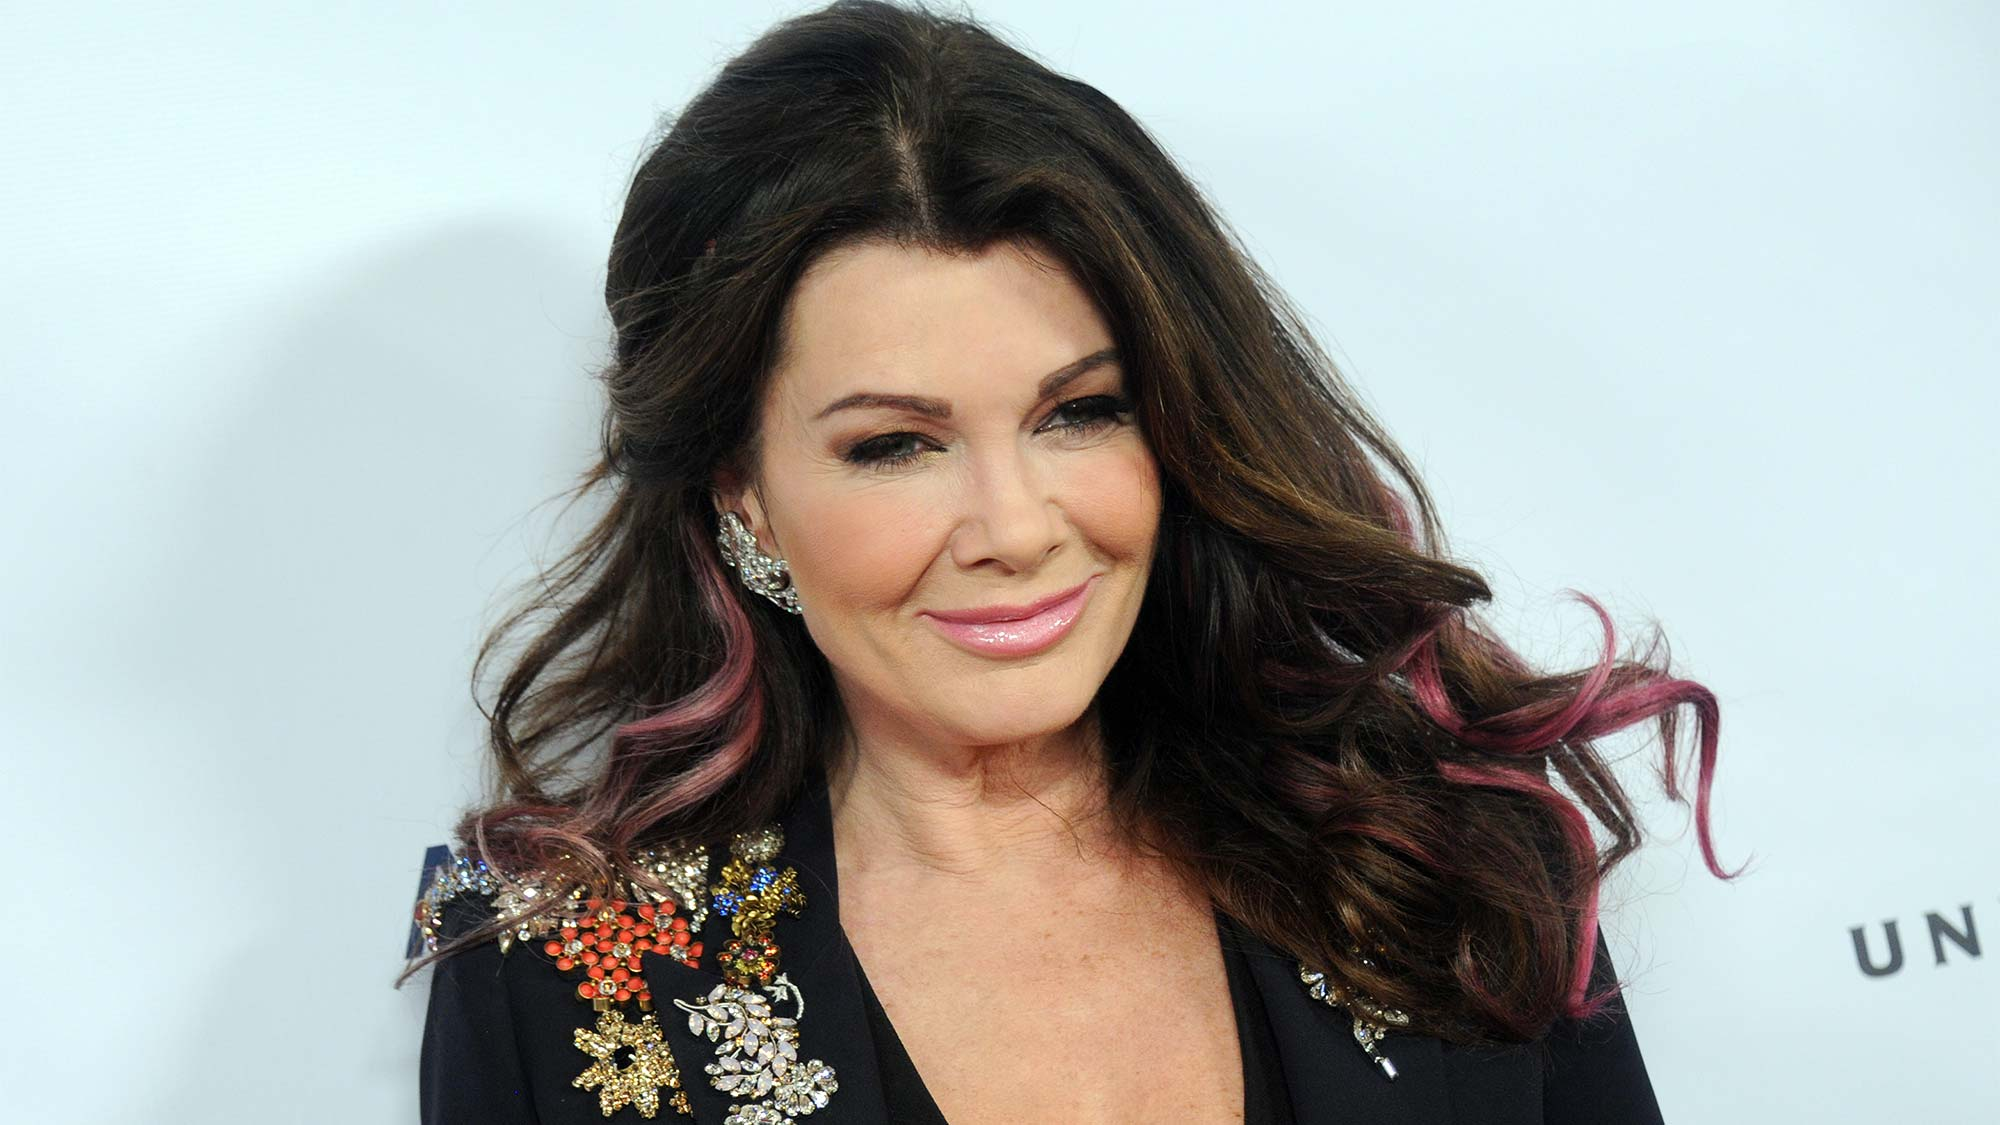 Westlake Legal Group Lisa-Vanderpump-dfef130de60c4510VgnVCM100000d7c1a8c0____-1 Lisa Vanderpump attends Jax Taylor and Brittany Cartwright's wedding despite mother's death New York Post fox-news/lifestyle/weddings fox-news/entertainment/tv fox-news/entertainment/genres/reality fox-news/entertainment/celebrity-news fox-news/entertainment fnc/entertainment fnc Christine Burroni article 0a7ffc75-3d8b-5d51-9286-62440585ba69